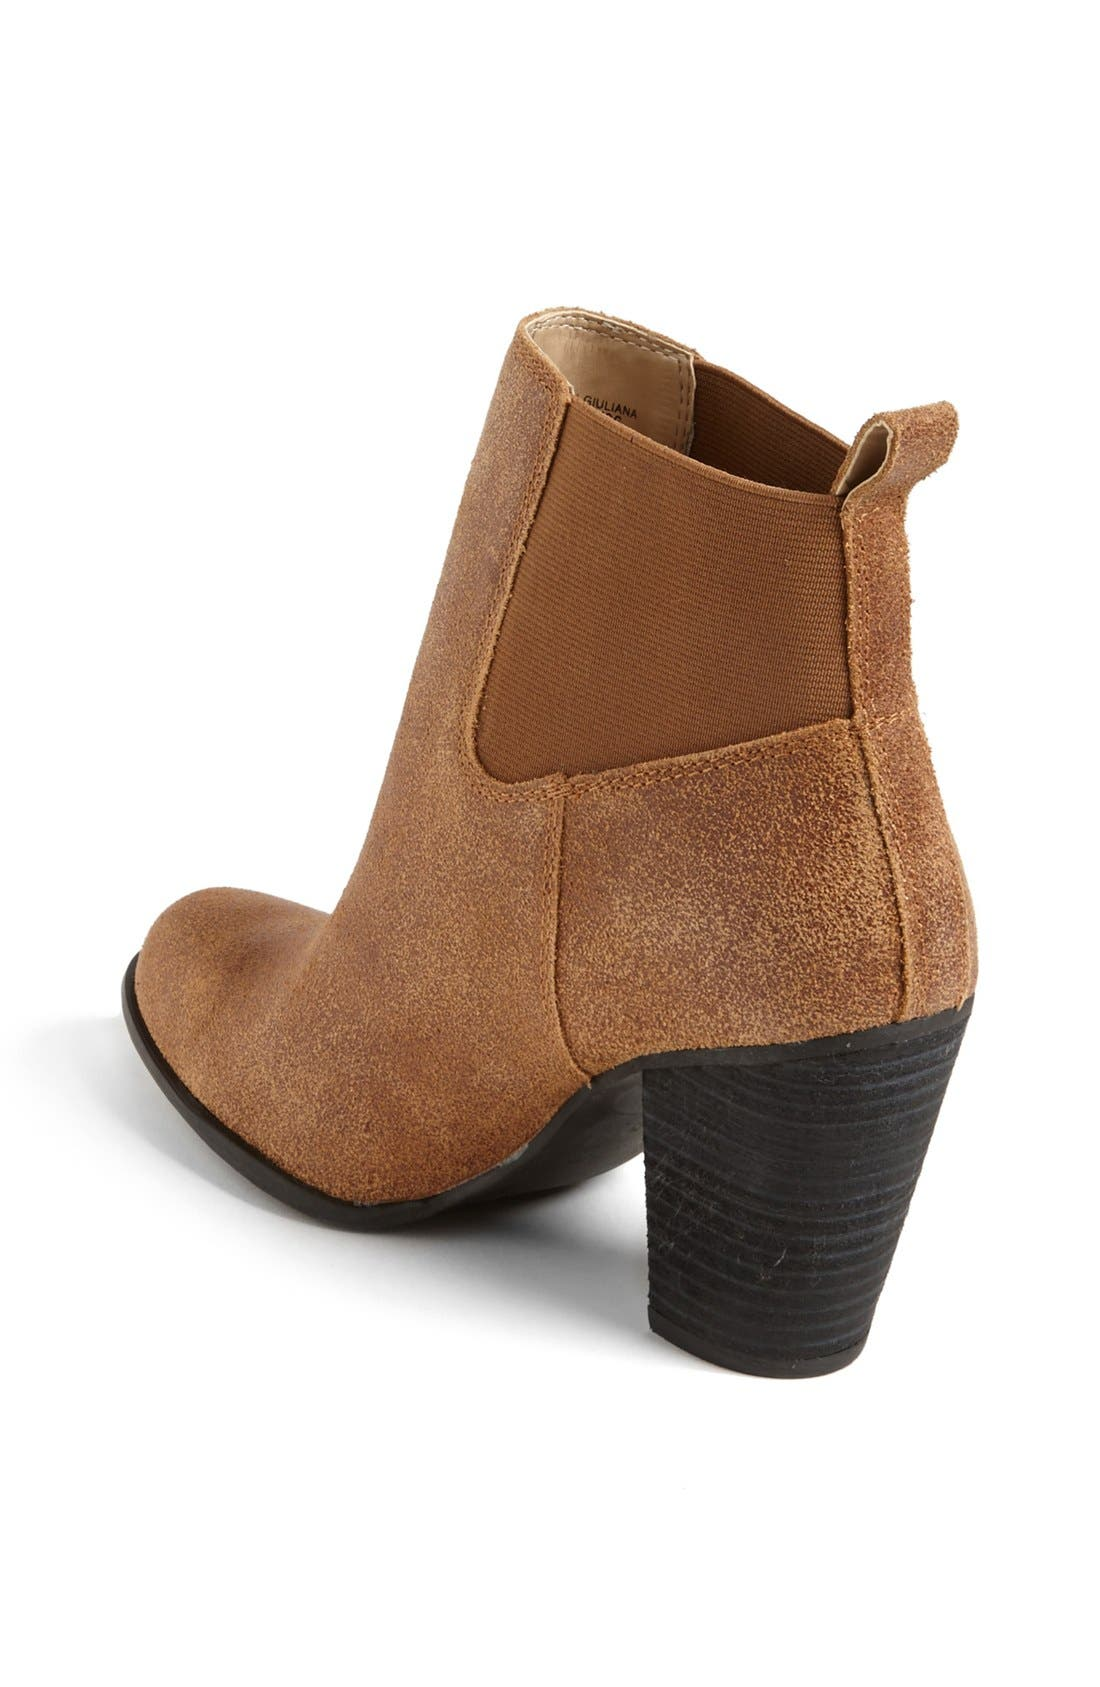 Alternate Image 2  - Julianne Hough for Sole Society 'Giuliana' Bootie